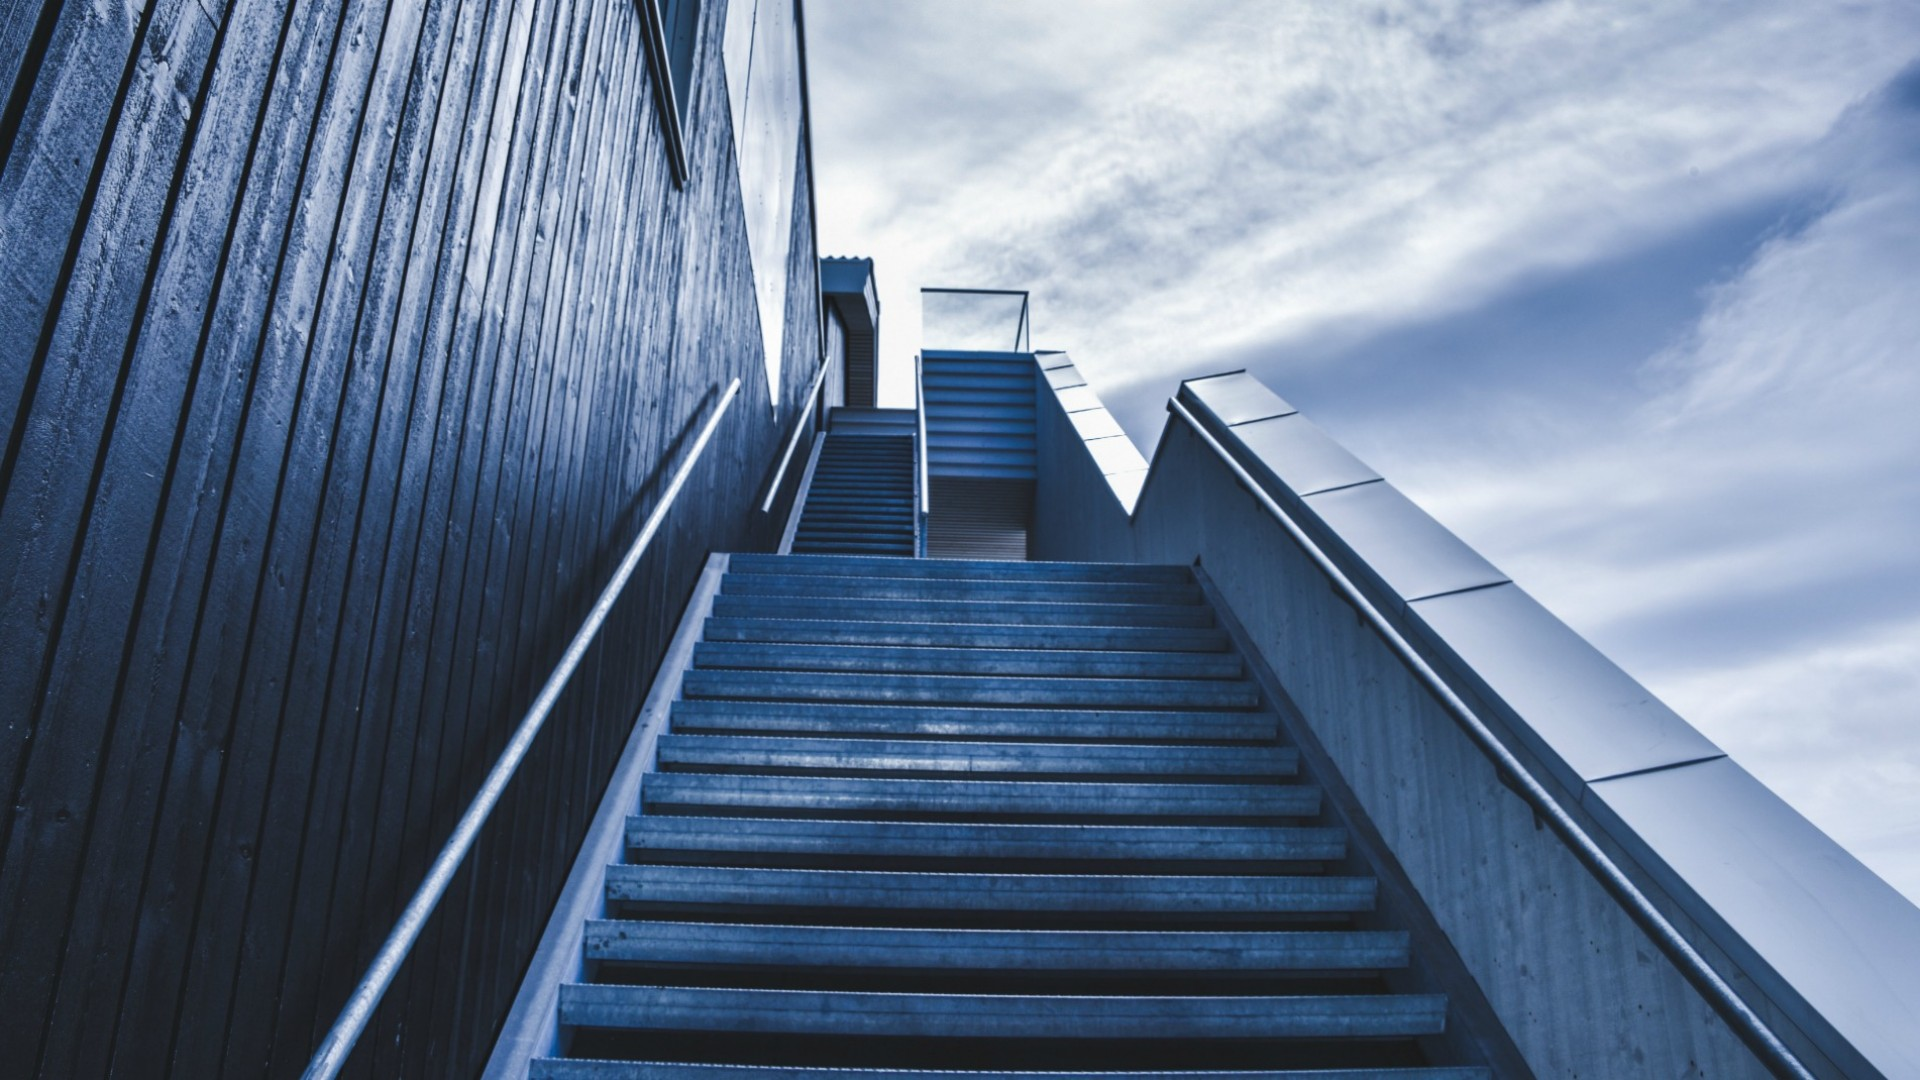 Web Accessibility -  Why It Matters - Stairs Image